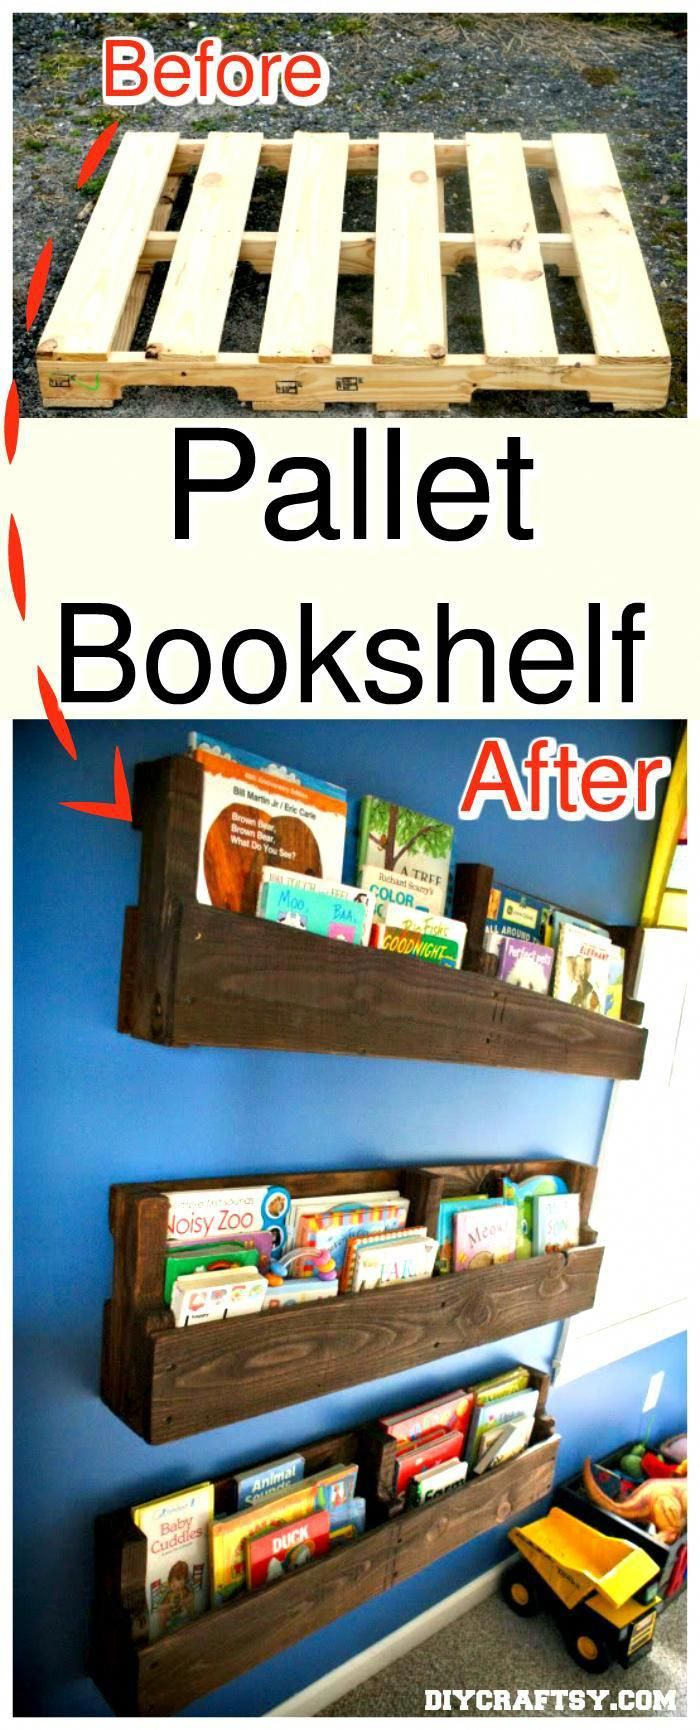 DIY Pallet Bookshelf – A Mini Tutorial - 150 Best DIY Pallet Projects and Pallet Furniture Crafts - Page 14 of 75 - DIY & Crafts #oldpalletsforcrafting